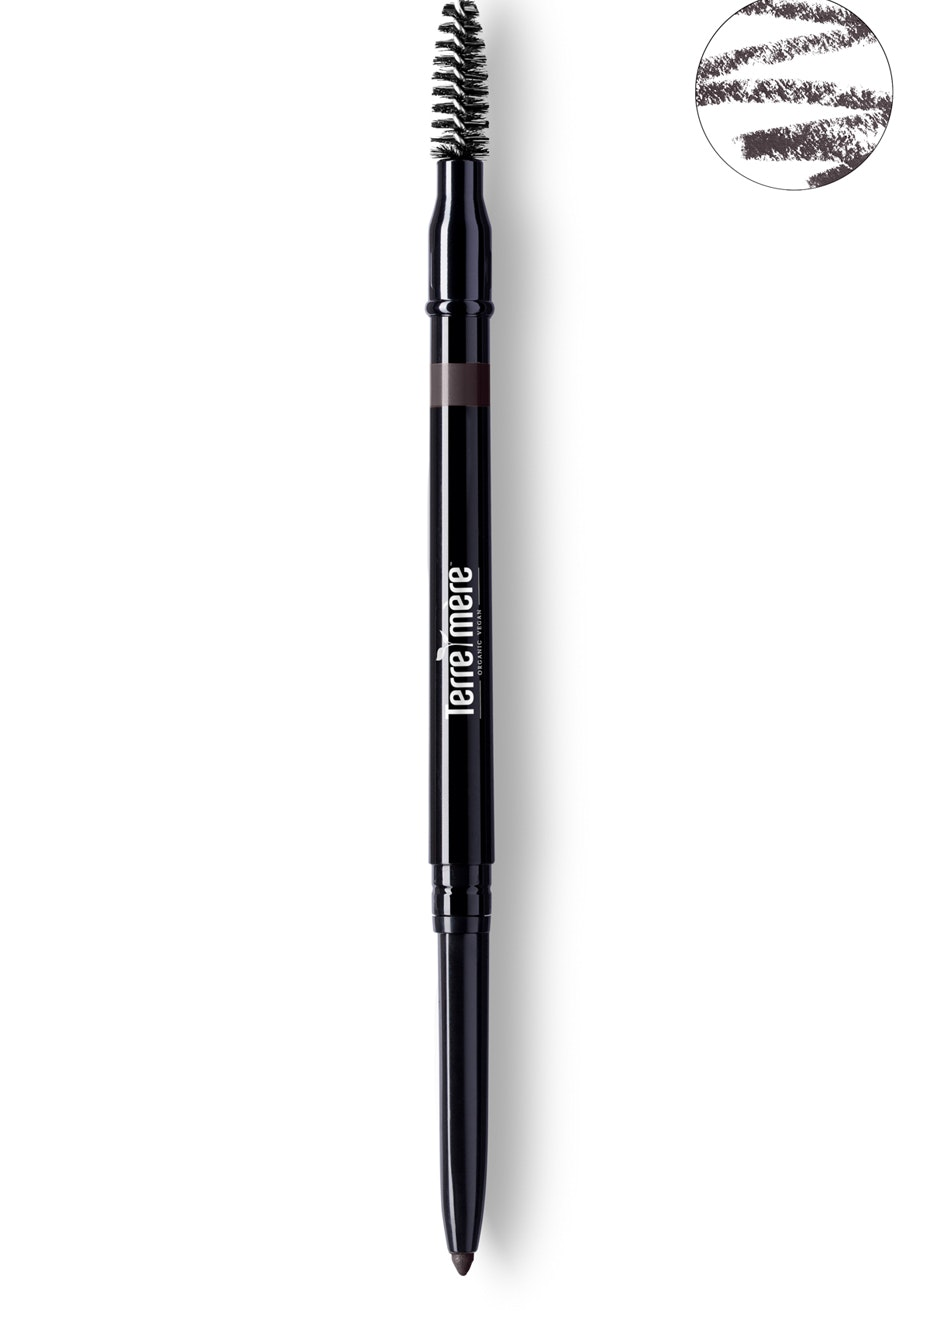 Terre Mere - Indelible Brow Pencil - Black Coffee